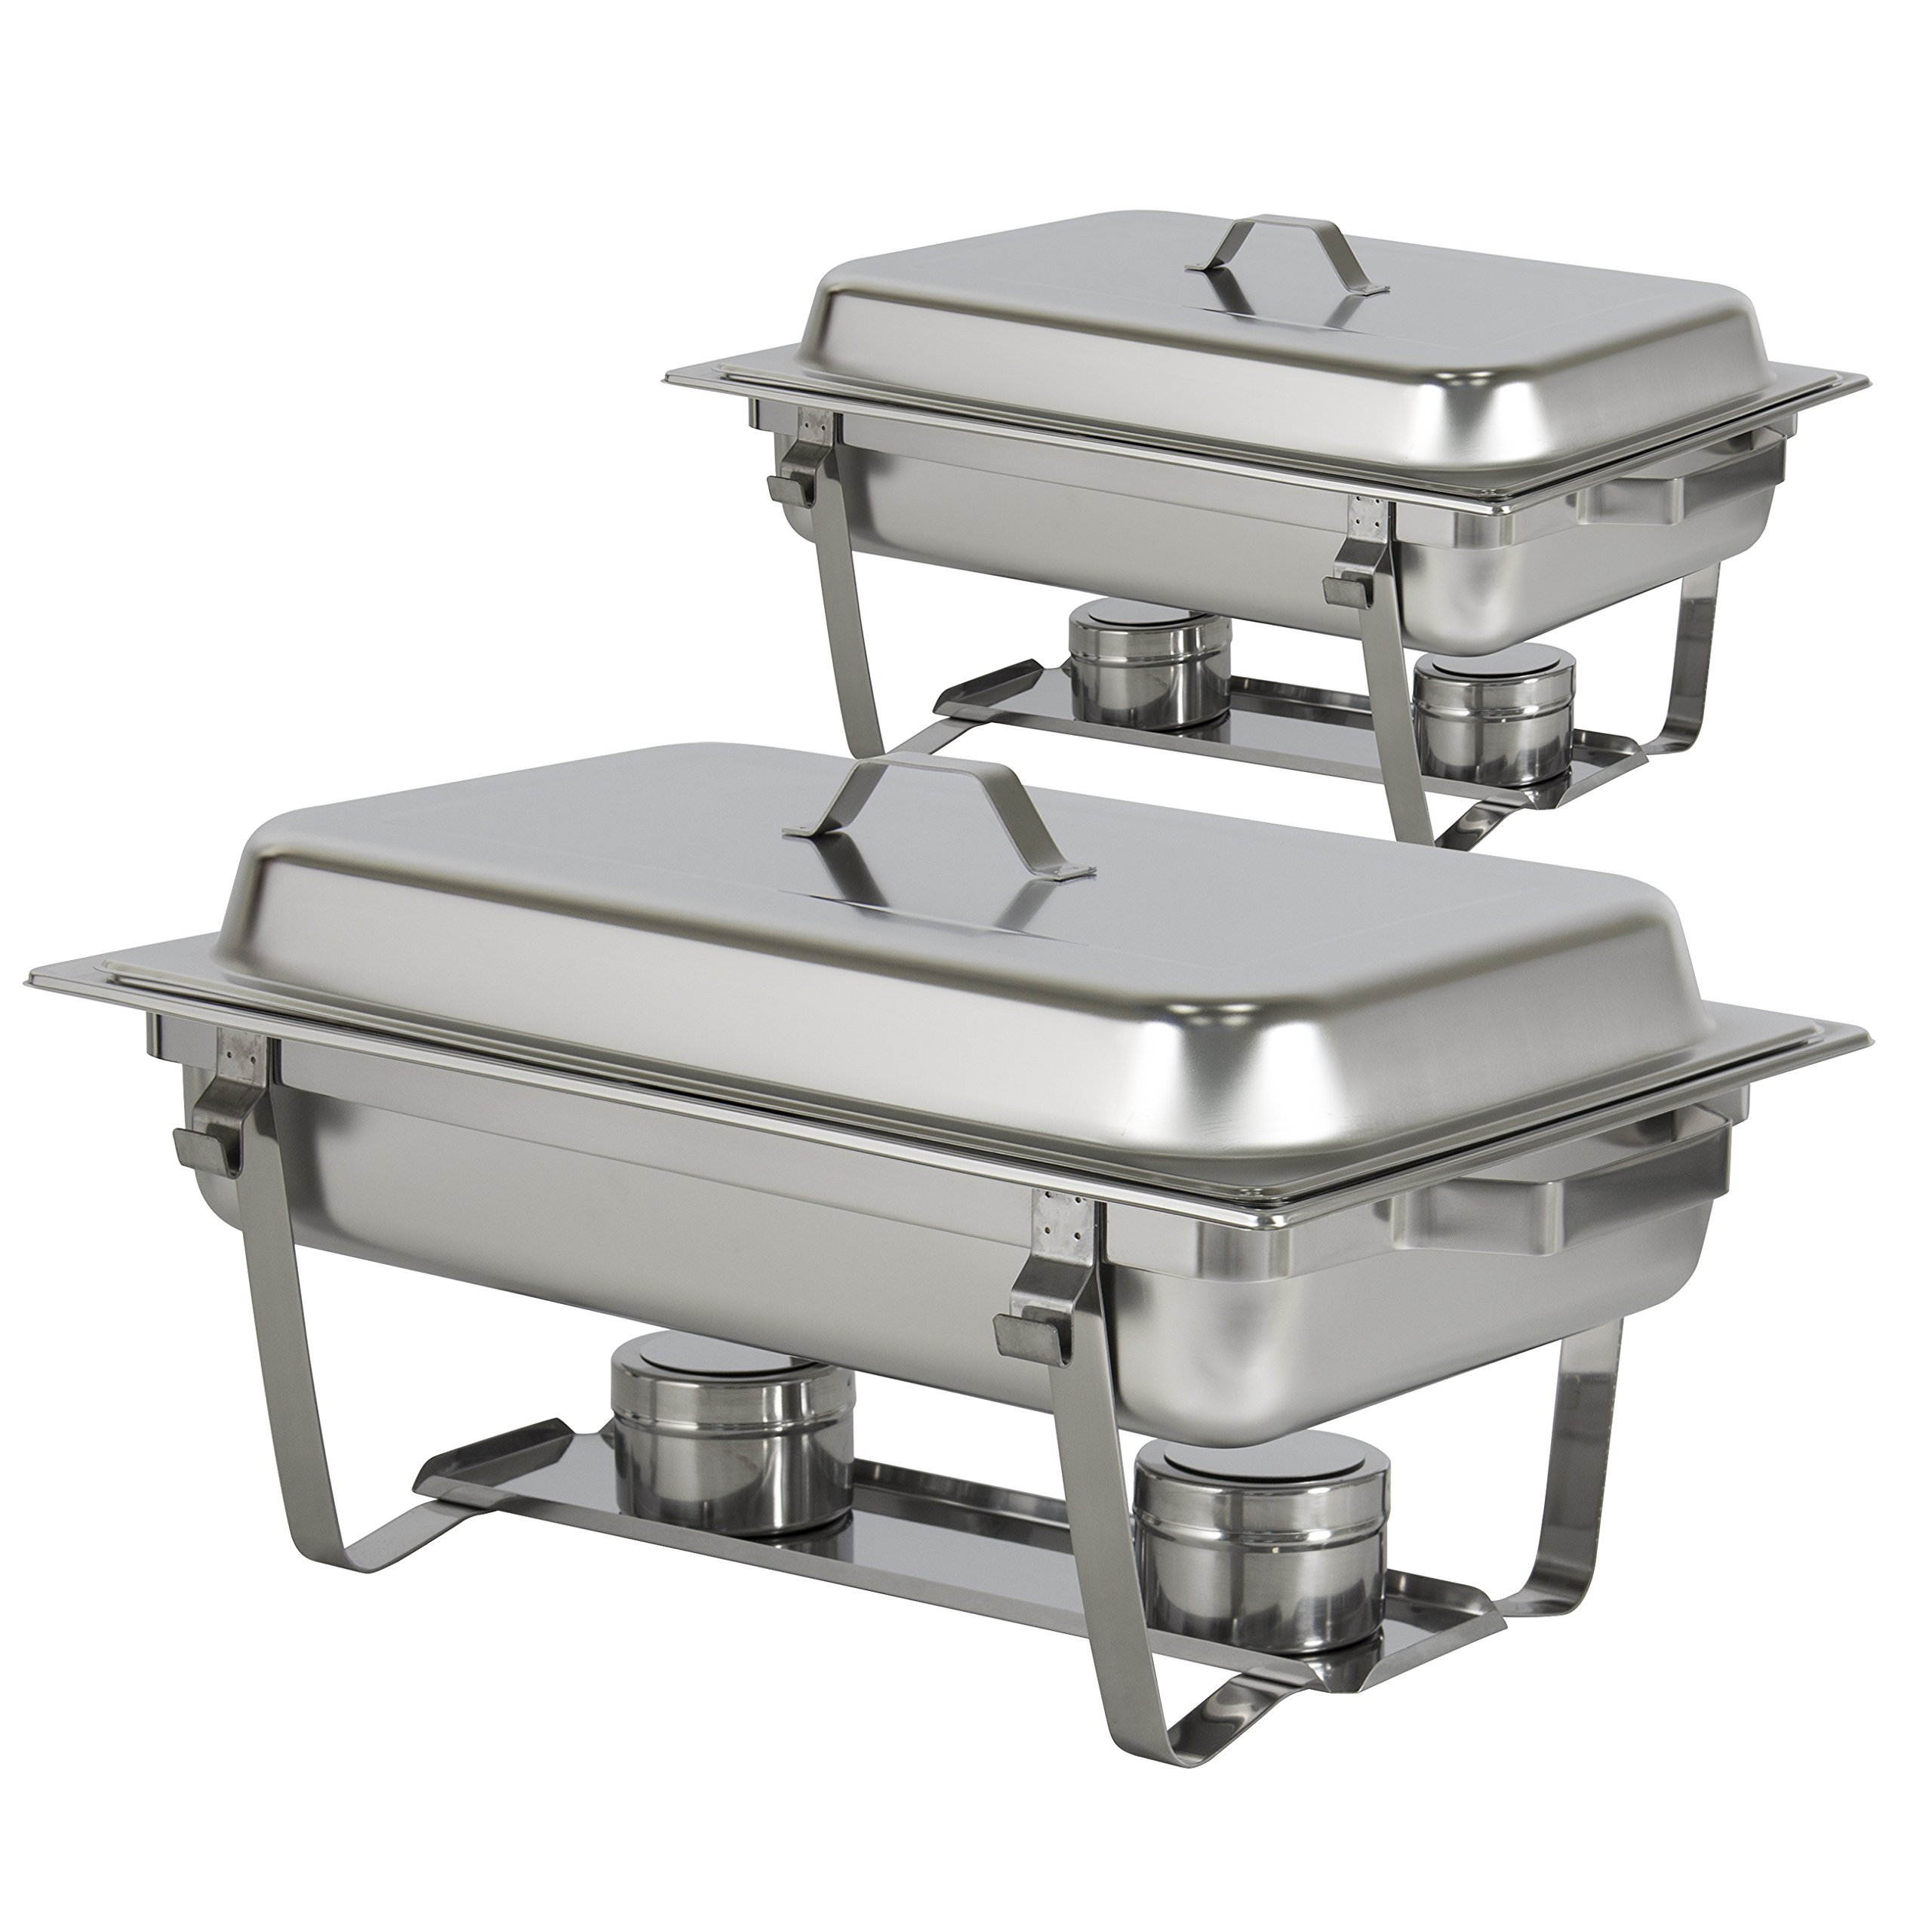 Best Choice Products 8qt Set of 2 Stainless Steel Full Size Tray Buffet Catering Chafing Dishes - Silver